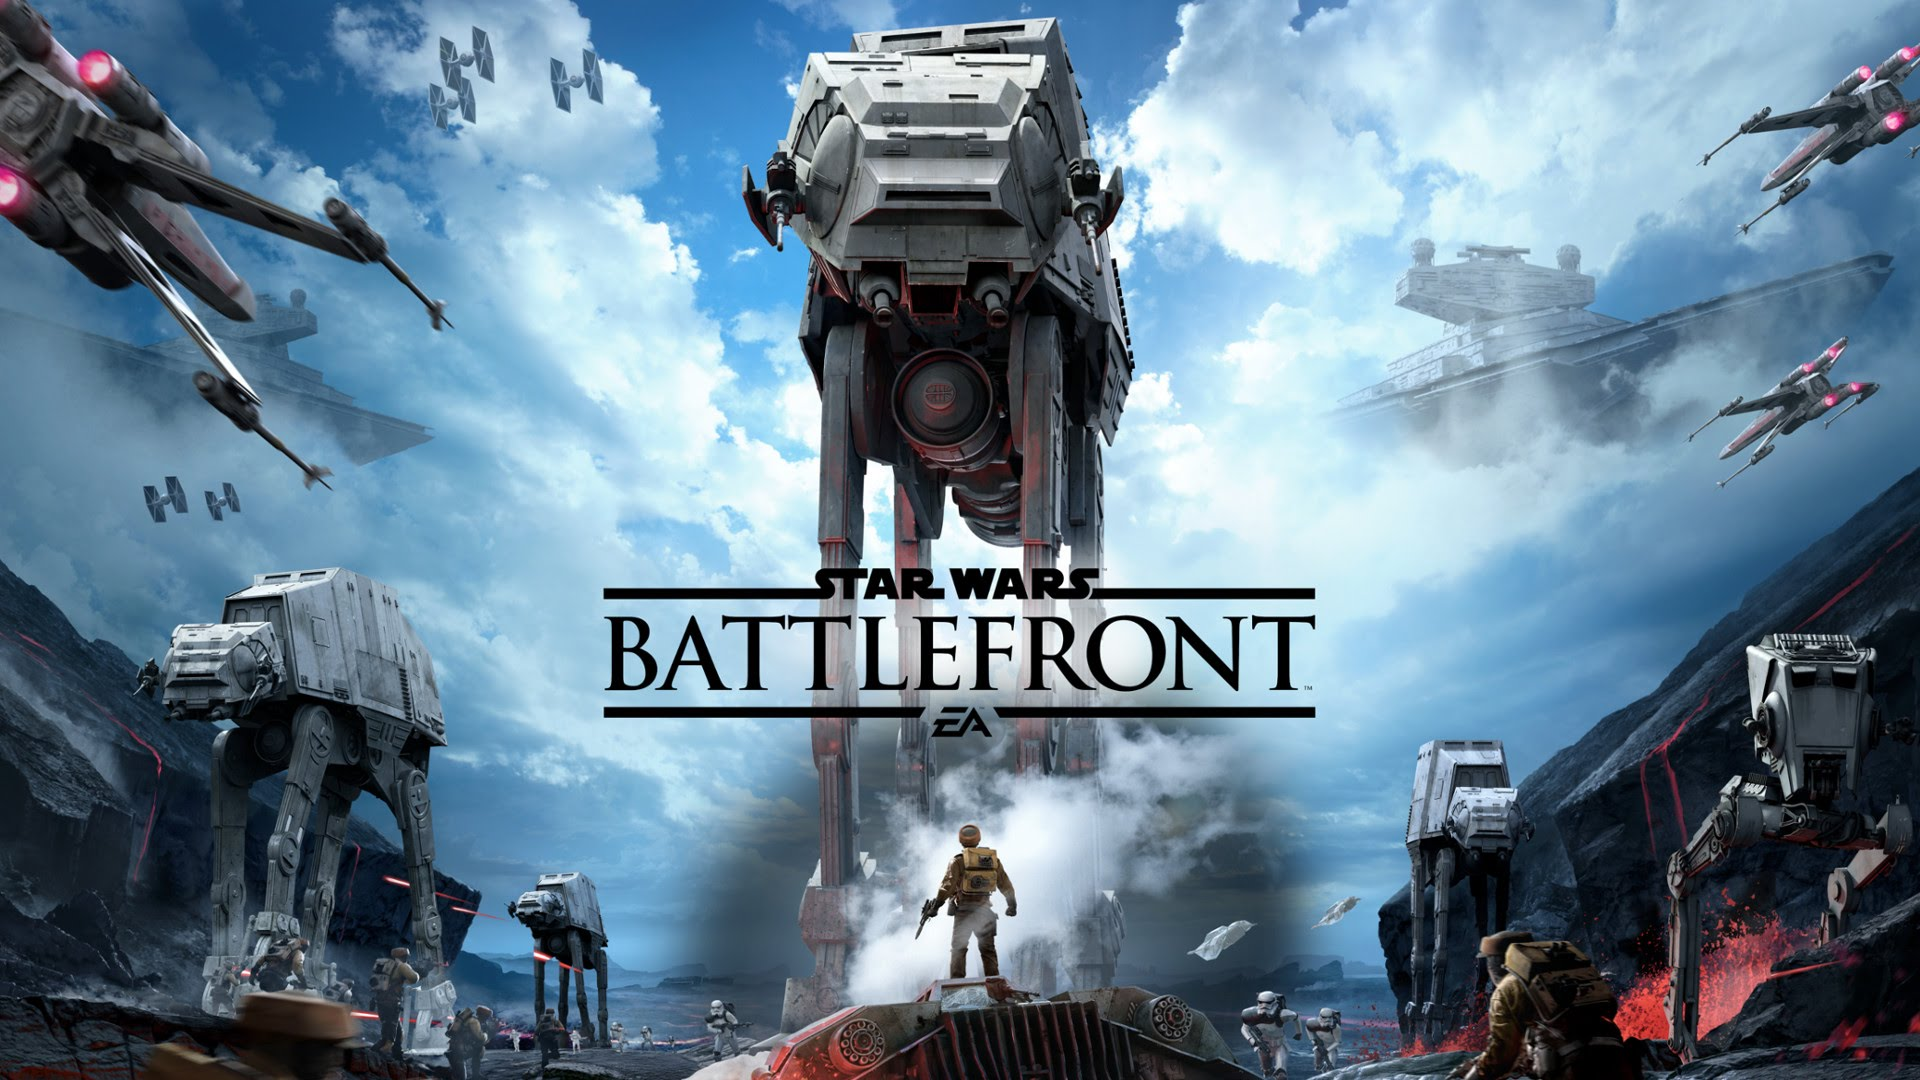 10 Hd Star Wars Battlefront Wallpapers